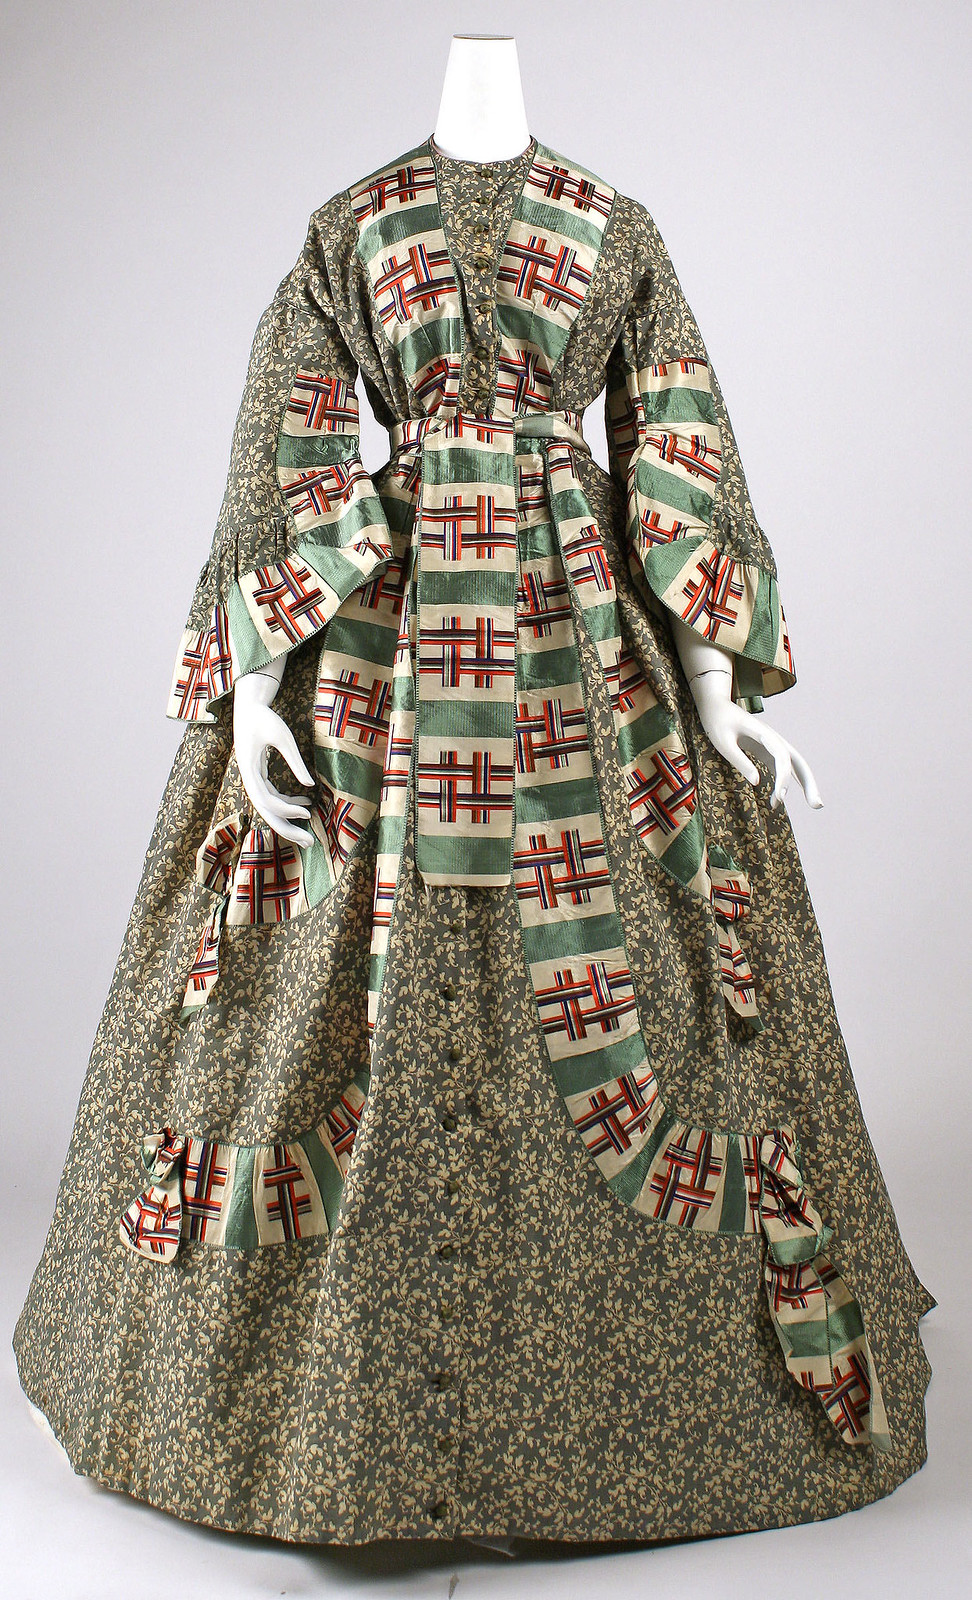 Dressing gown 1860s American, Cotton, silk, metmuseum